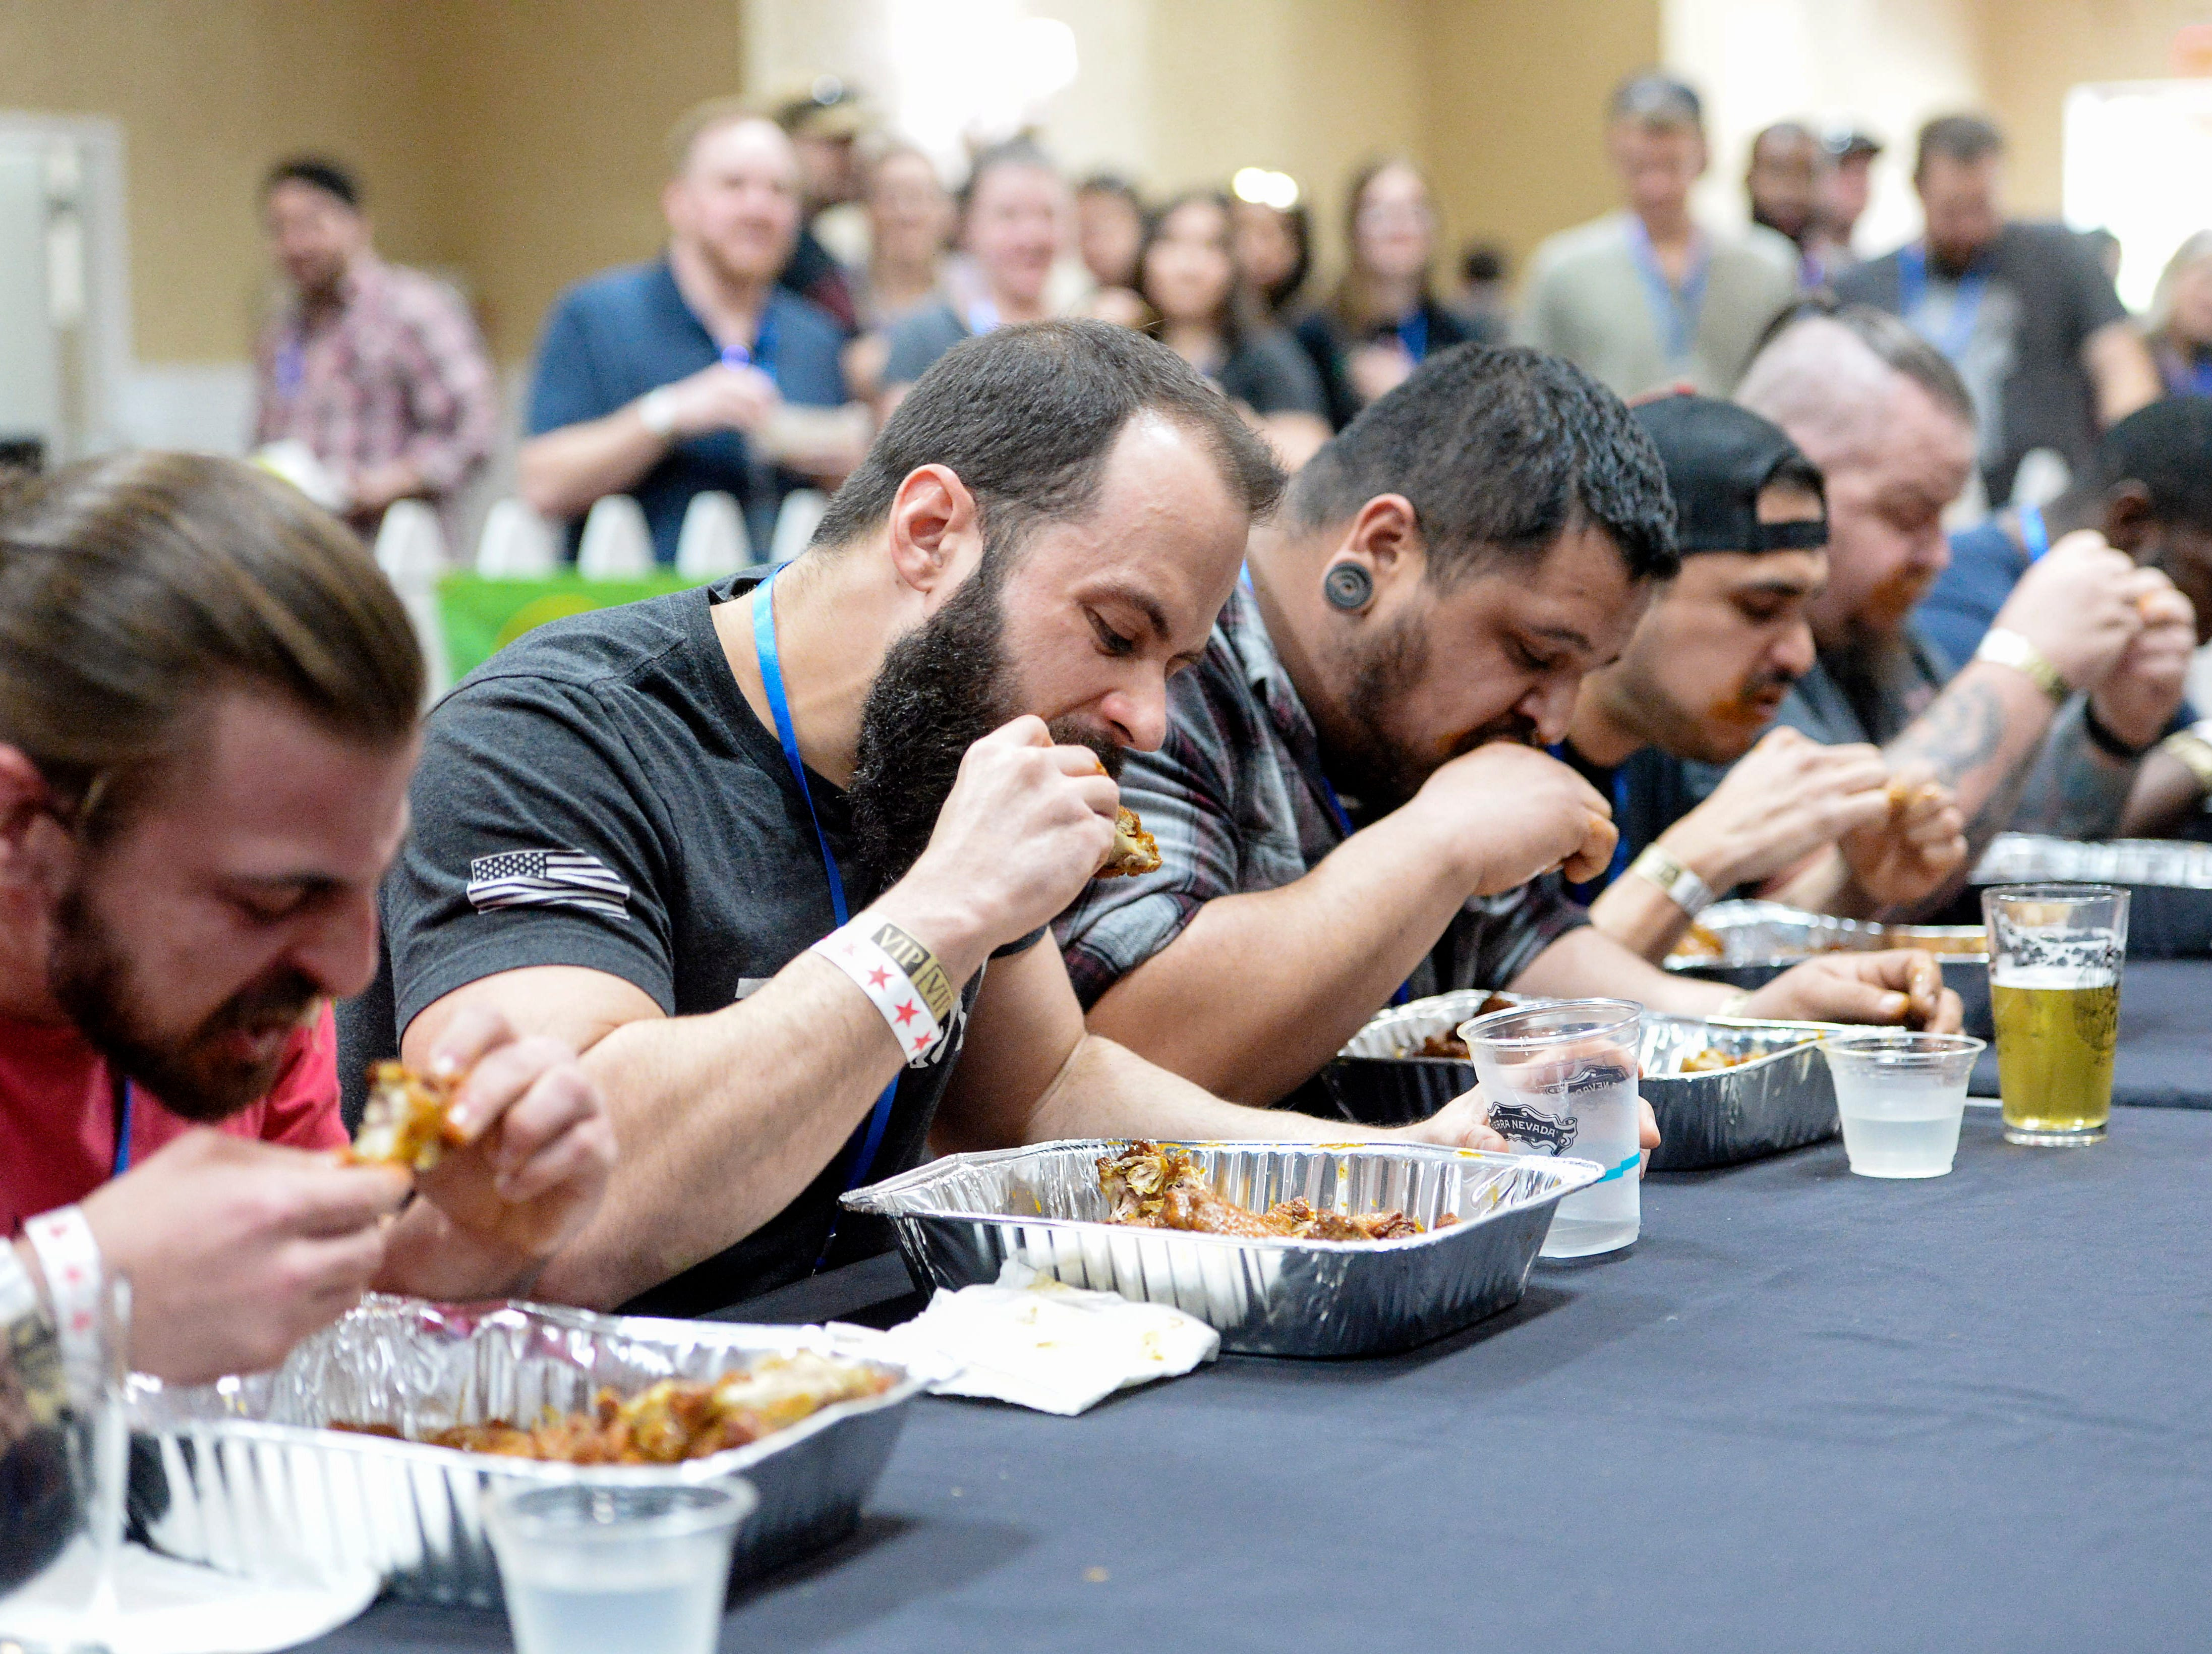 Participants sweat during the King of the Wing hot wing eating contest sponsored by Firewalker Hot Sauce during the 8th annual Asheville Wing War at the Crowne Plaza March 10, 2019 in Asheville.